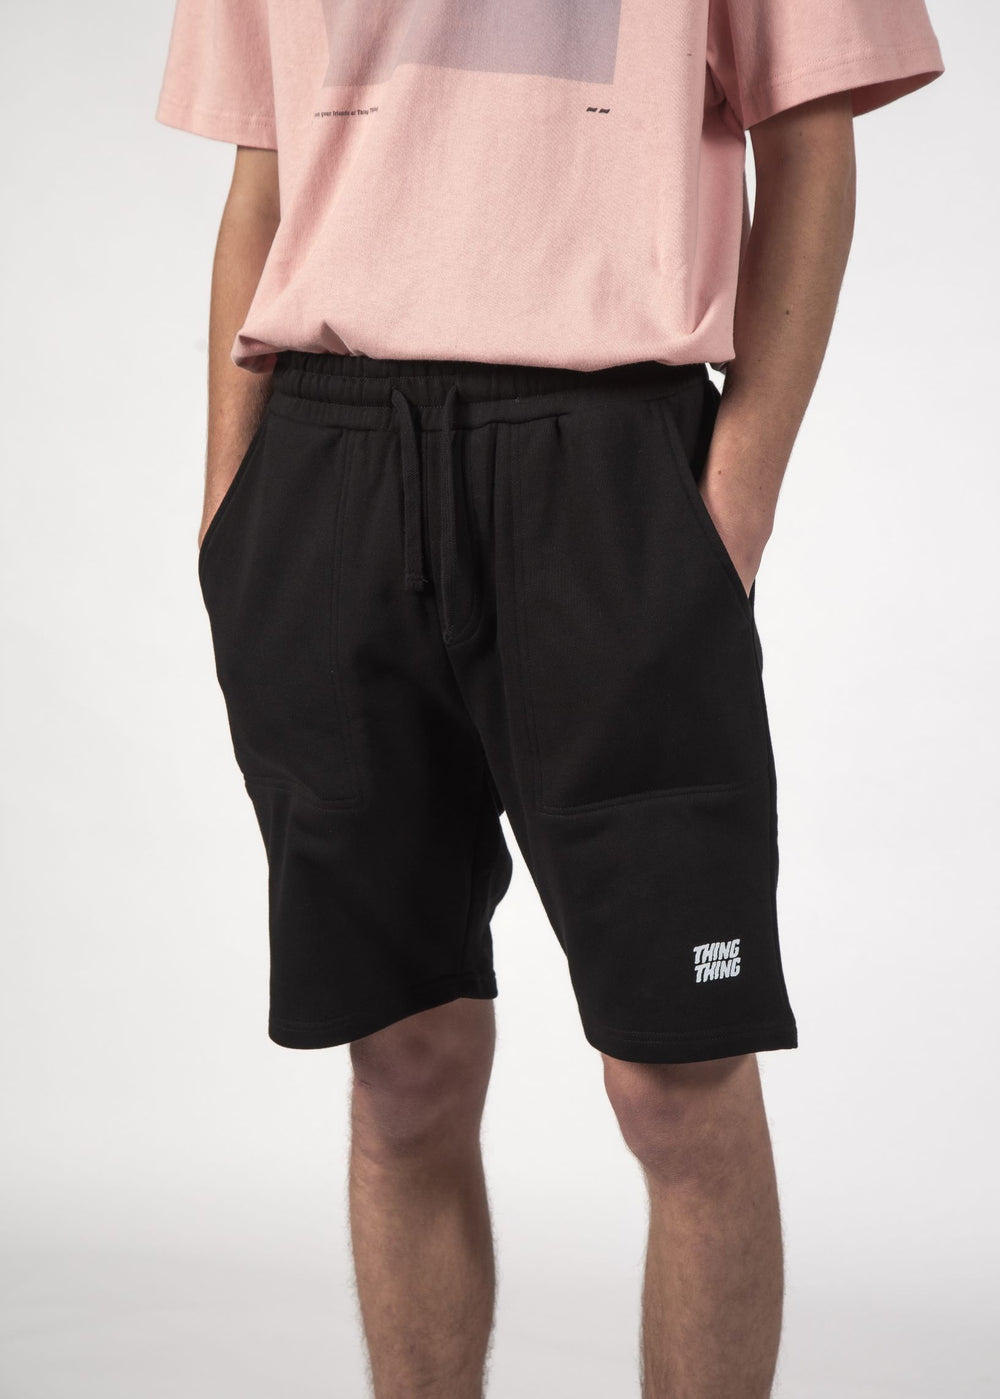 VEX TRACK SHORT - Black